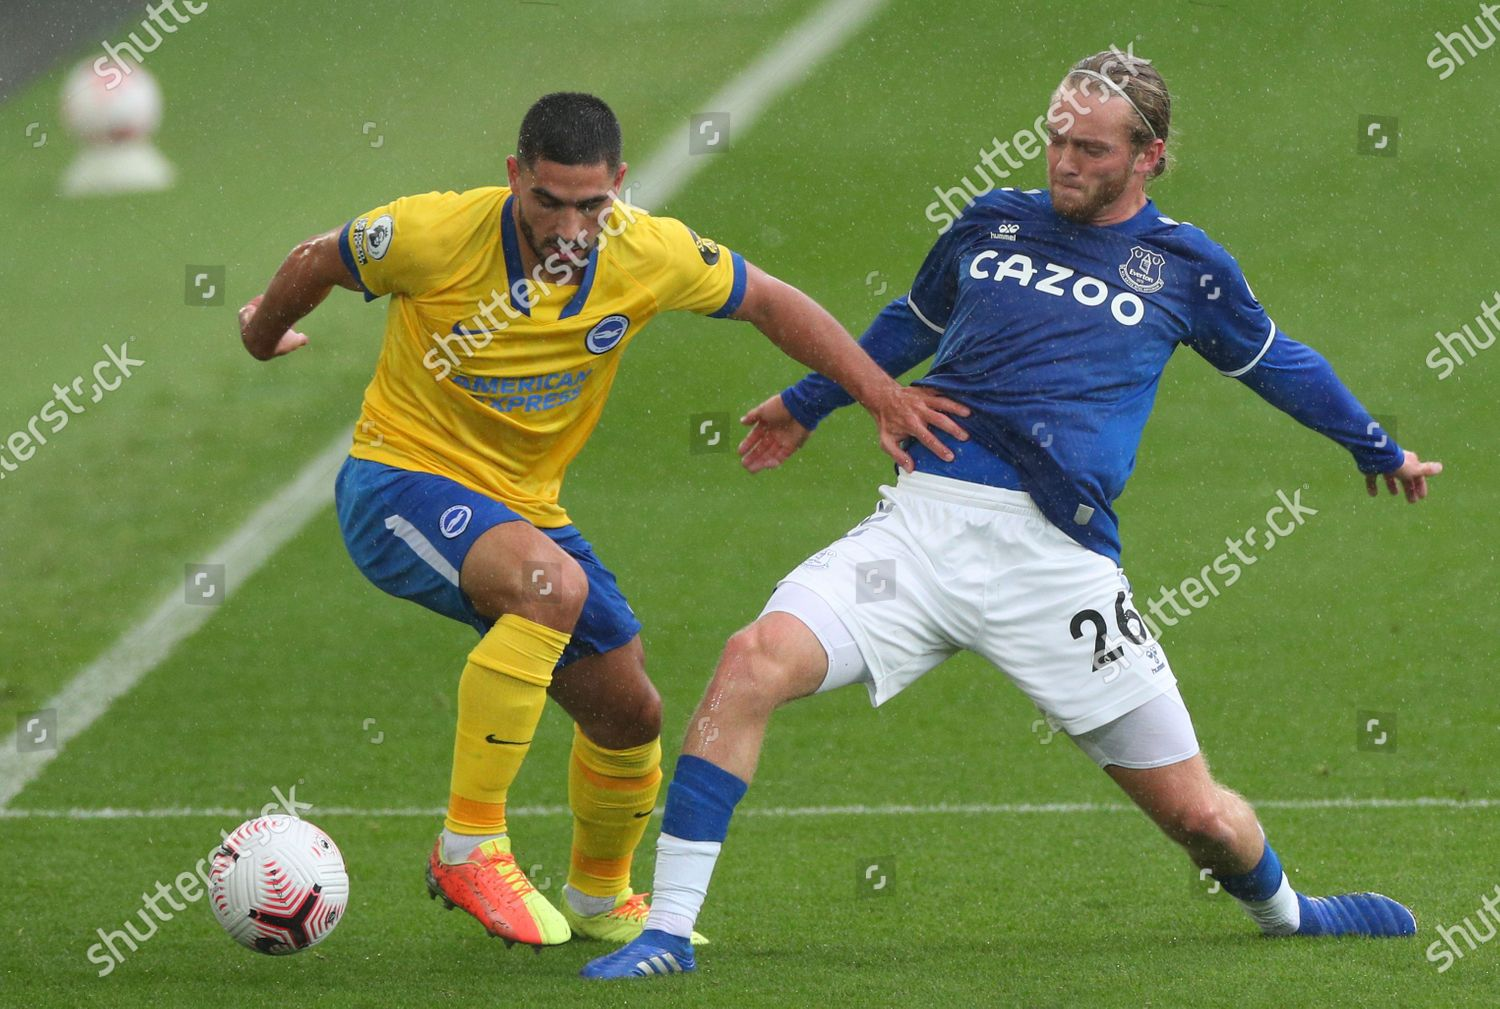 Tom Davies Everton R Action Against Neal Editorial Stock Photo Stock Image Shutterstock